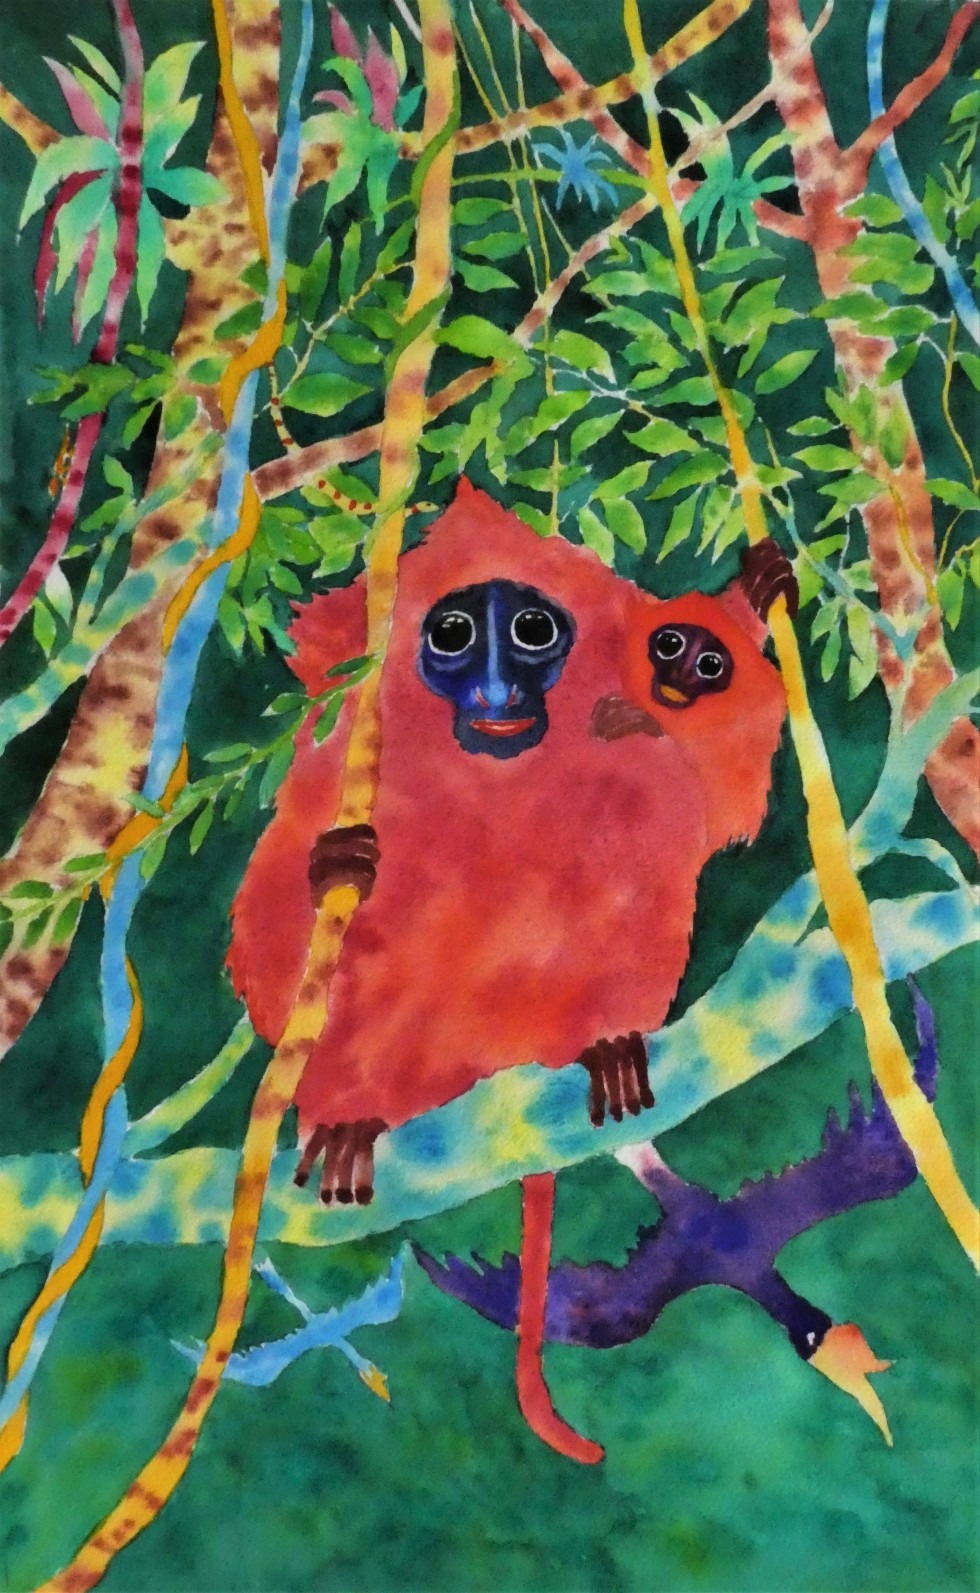 Ron Galimam - Red Leaf monkeys, Watercolour